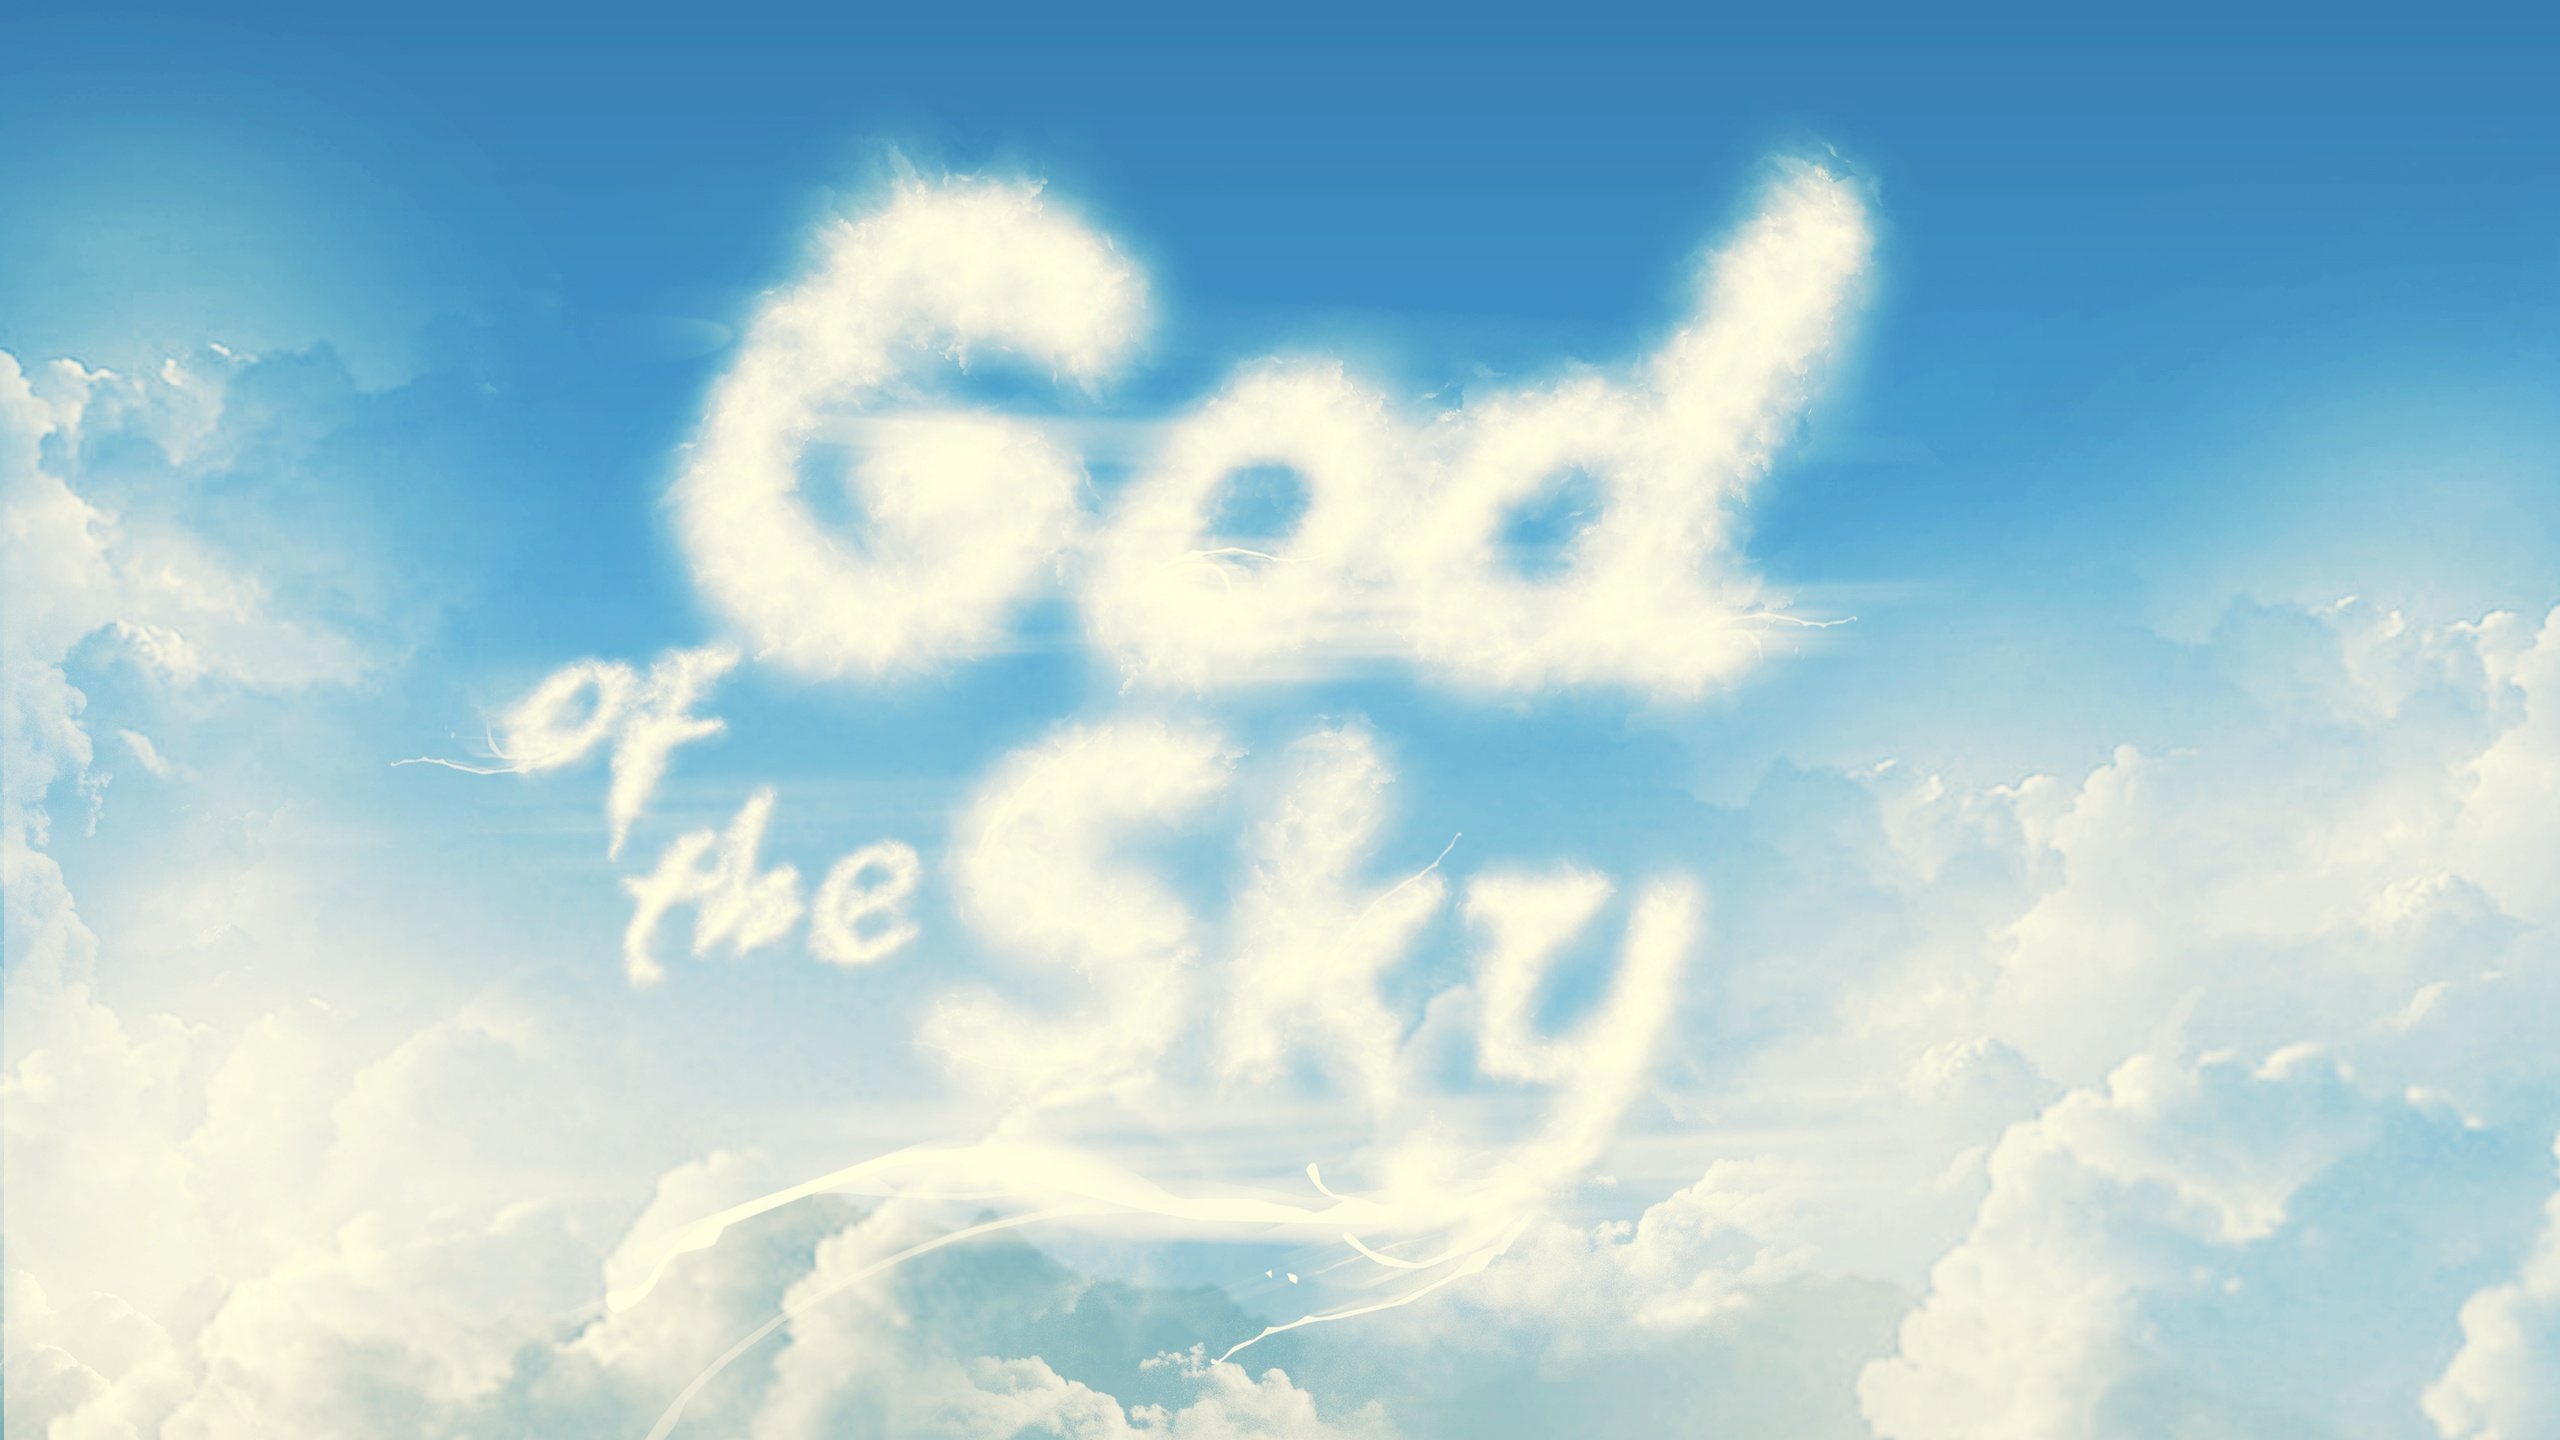 God Of The Sky Wallpapers - 2560x1440 - 493199